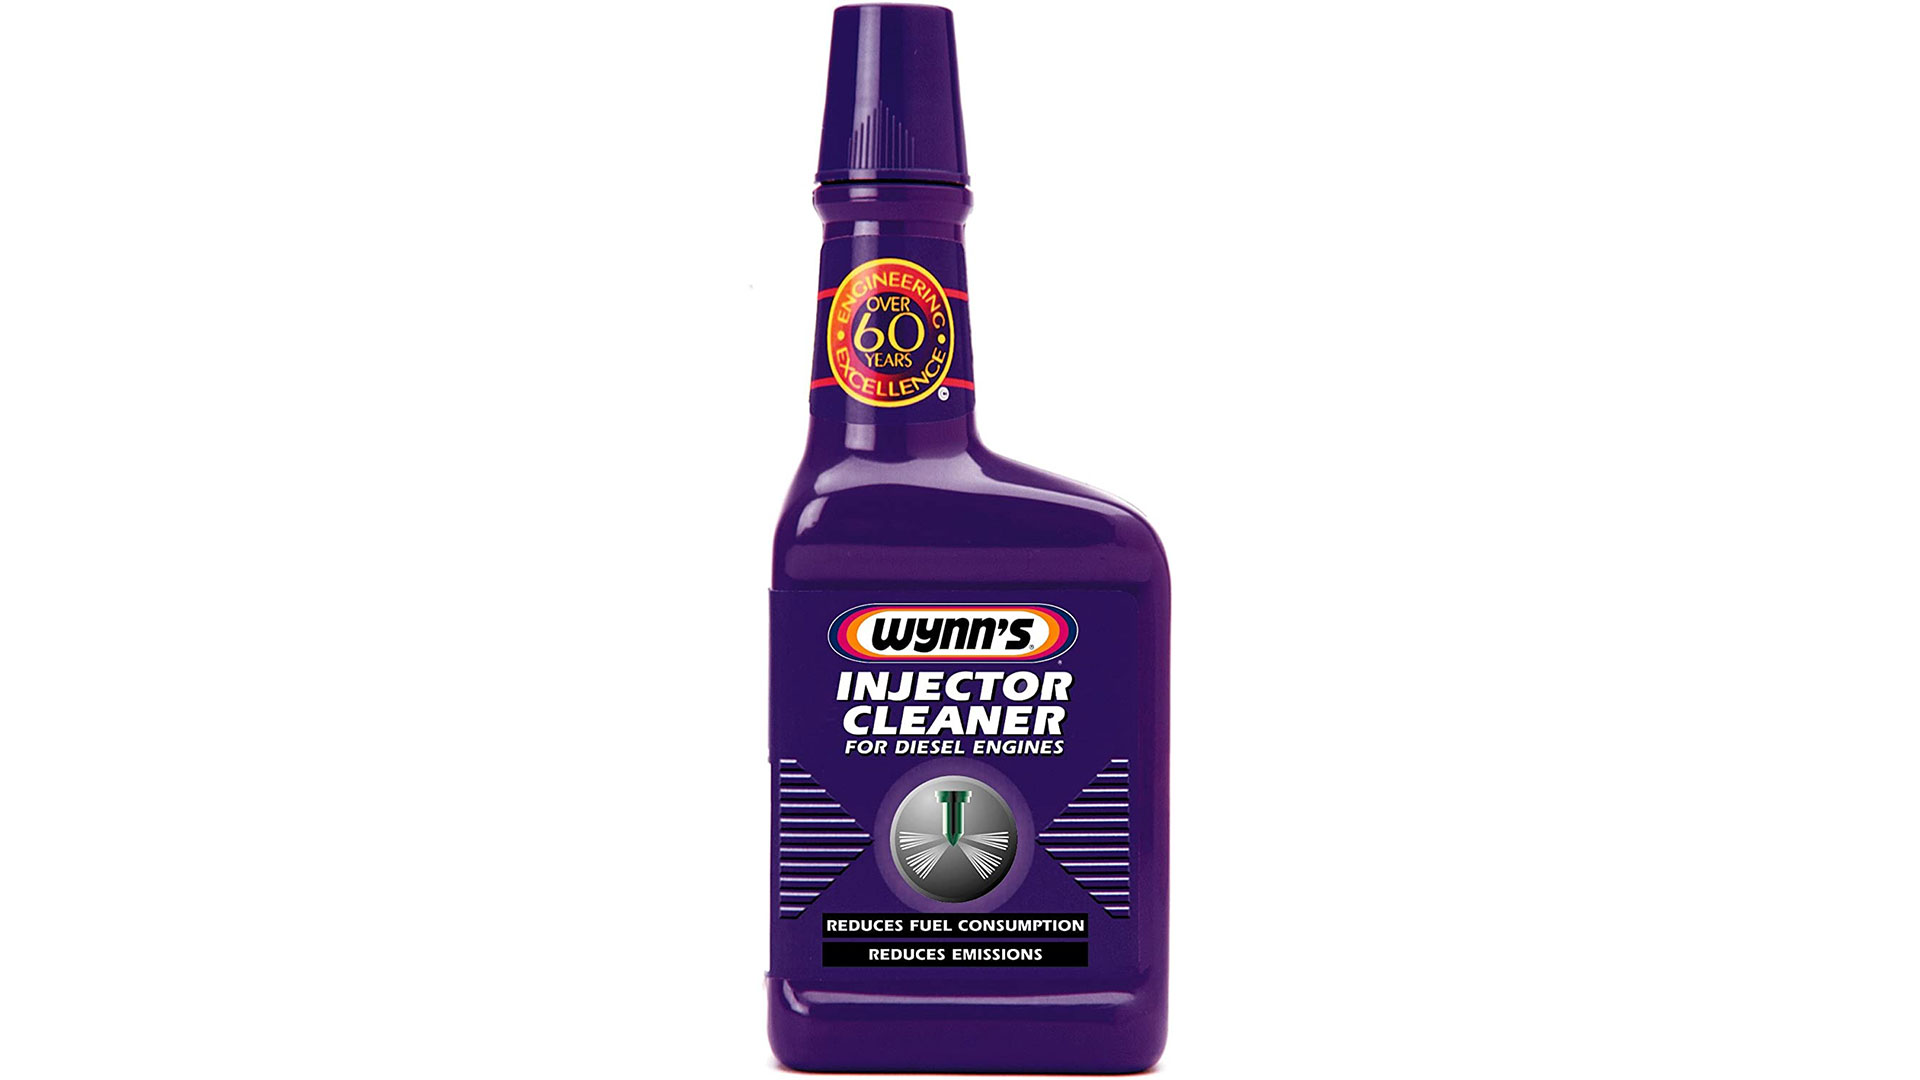 wynns diesel injector cleaner